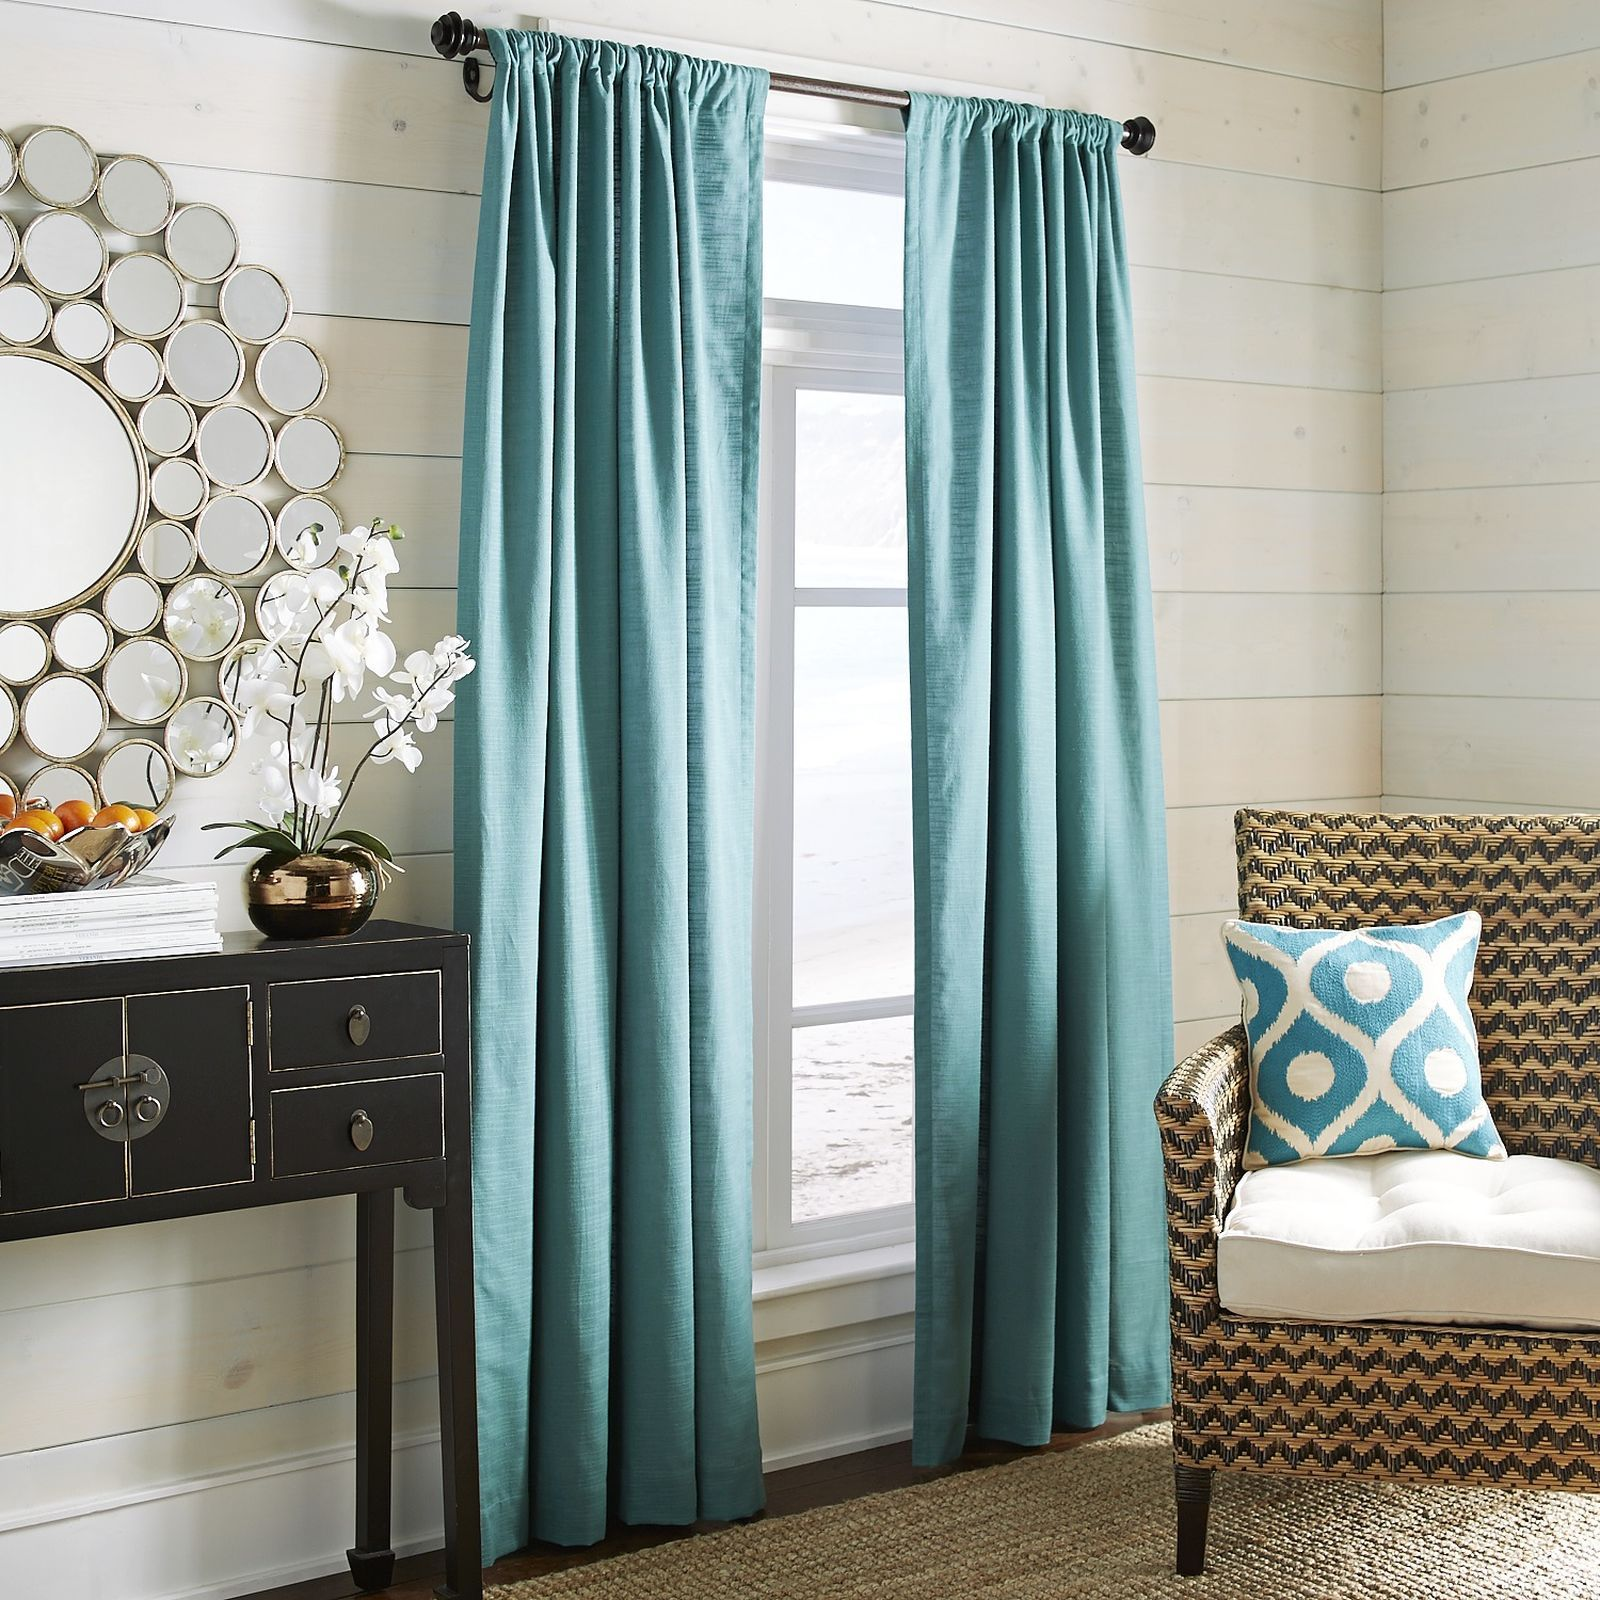 whitley curtain - teal | pier 1 imports | decor | pinterest | teal